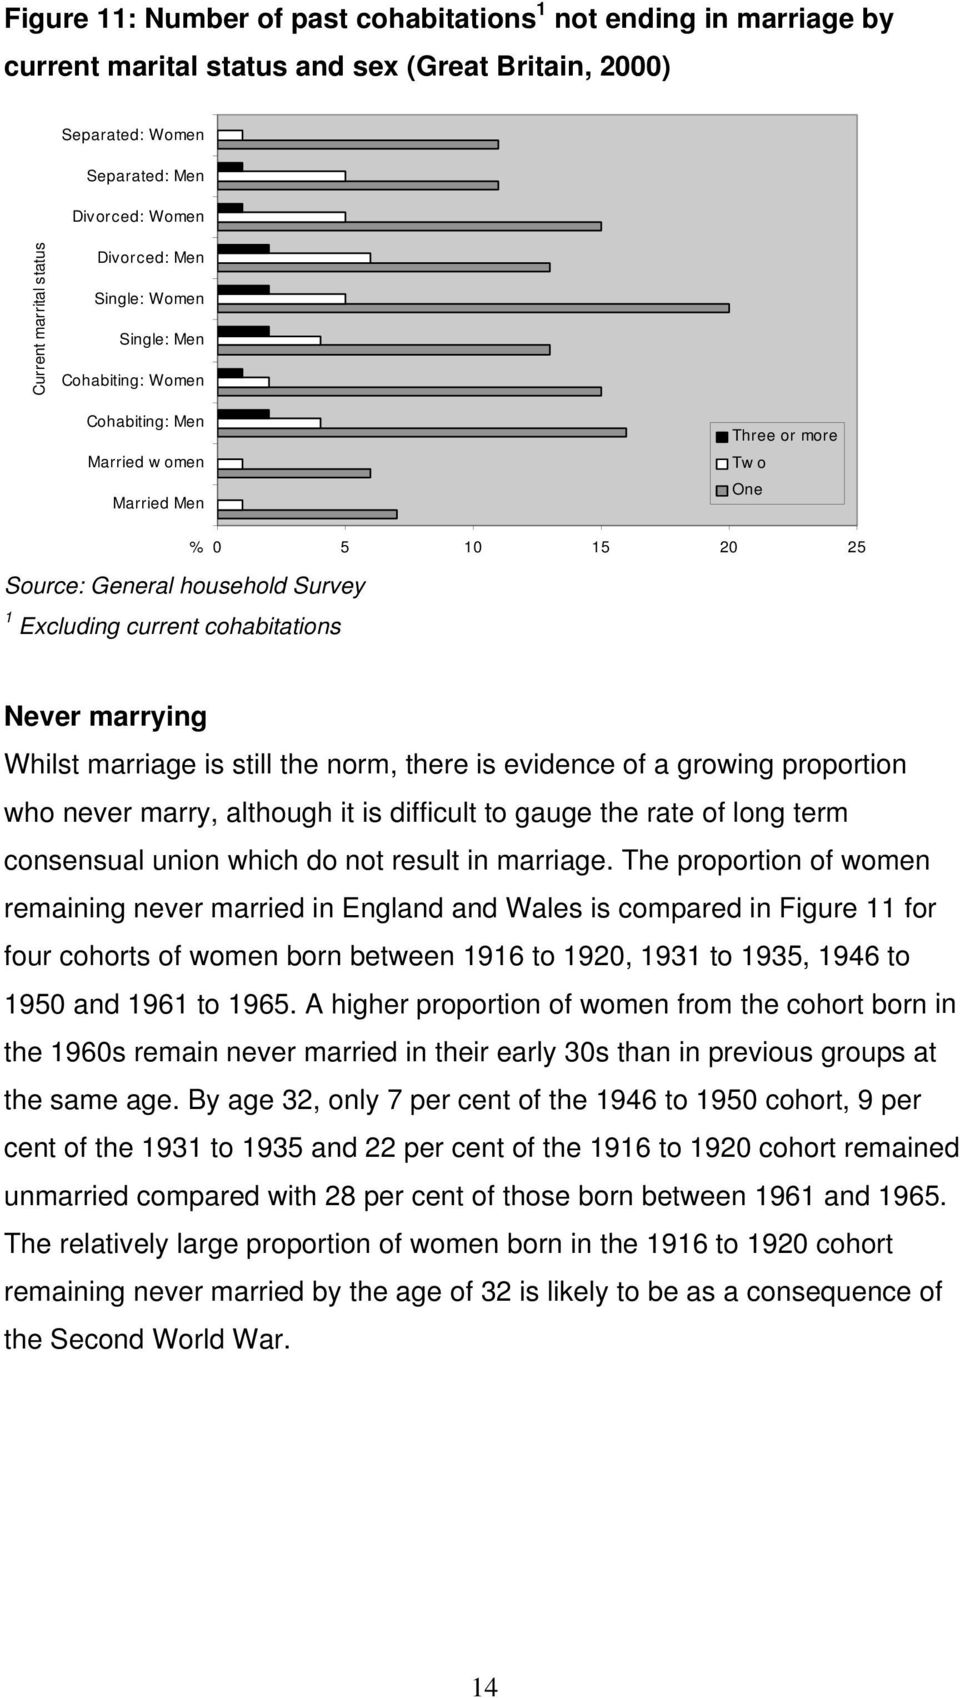 15 20 25 Never marrying Whilst marriage is still the norm, there is evidence of a growing proportion who never marry, although it is difficult to gauge the rate of long term consensual union which do